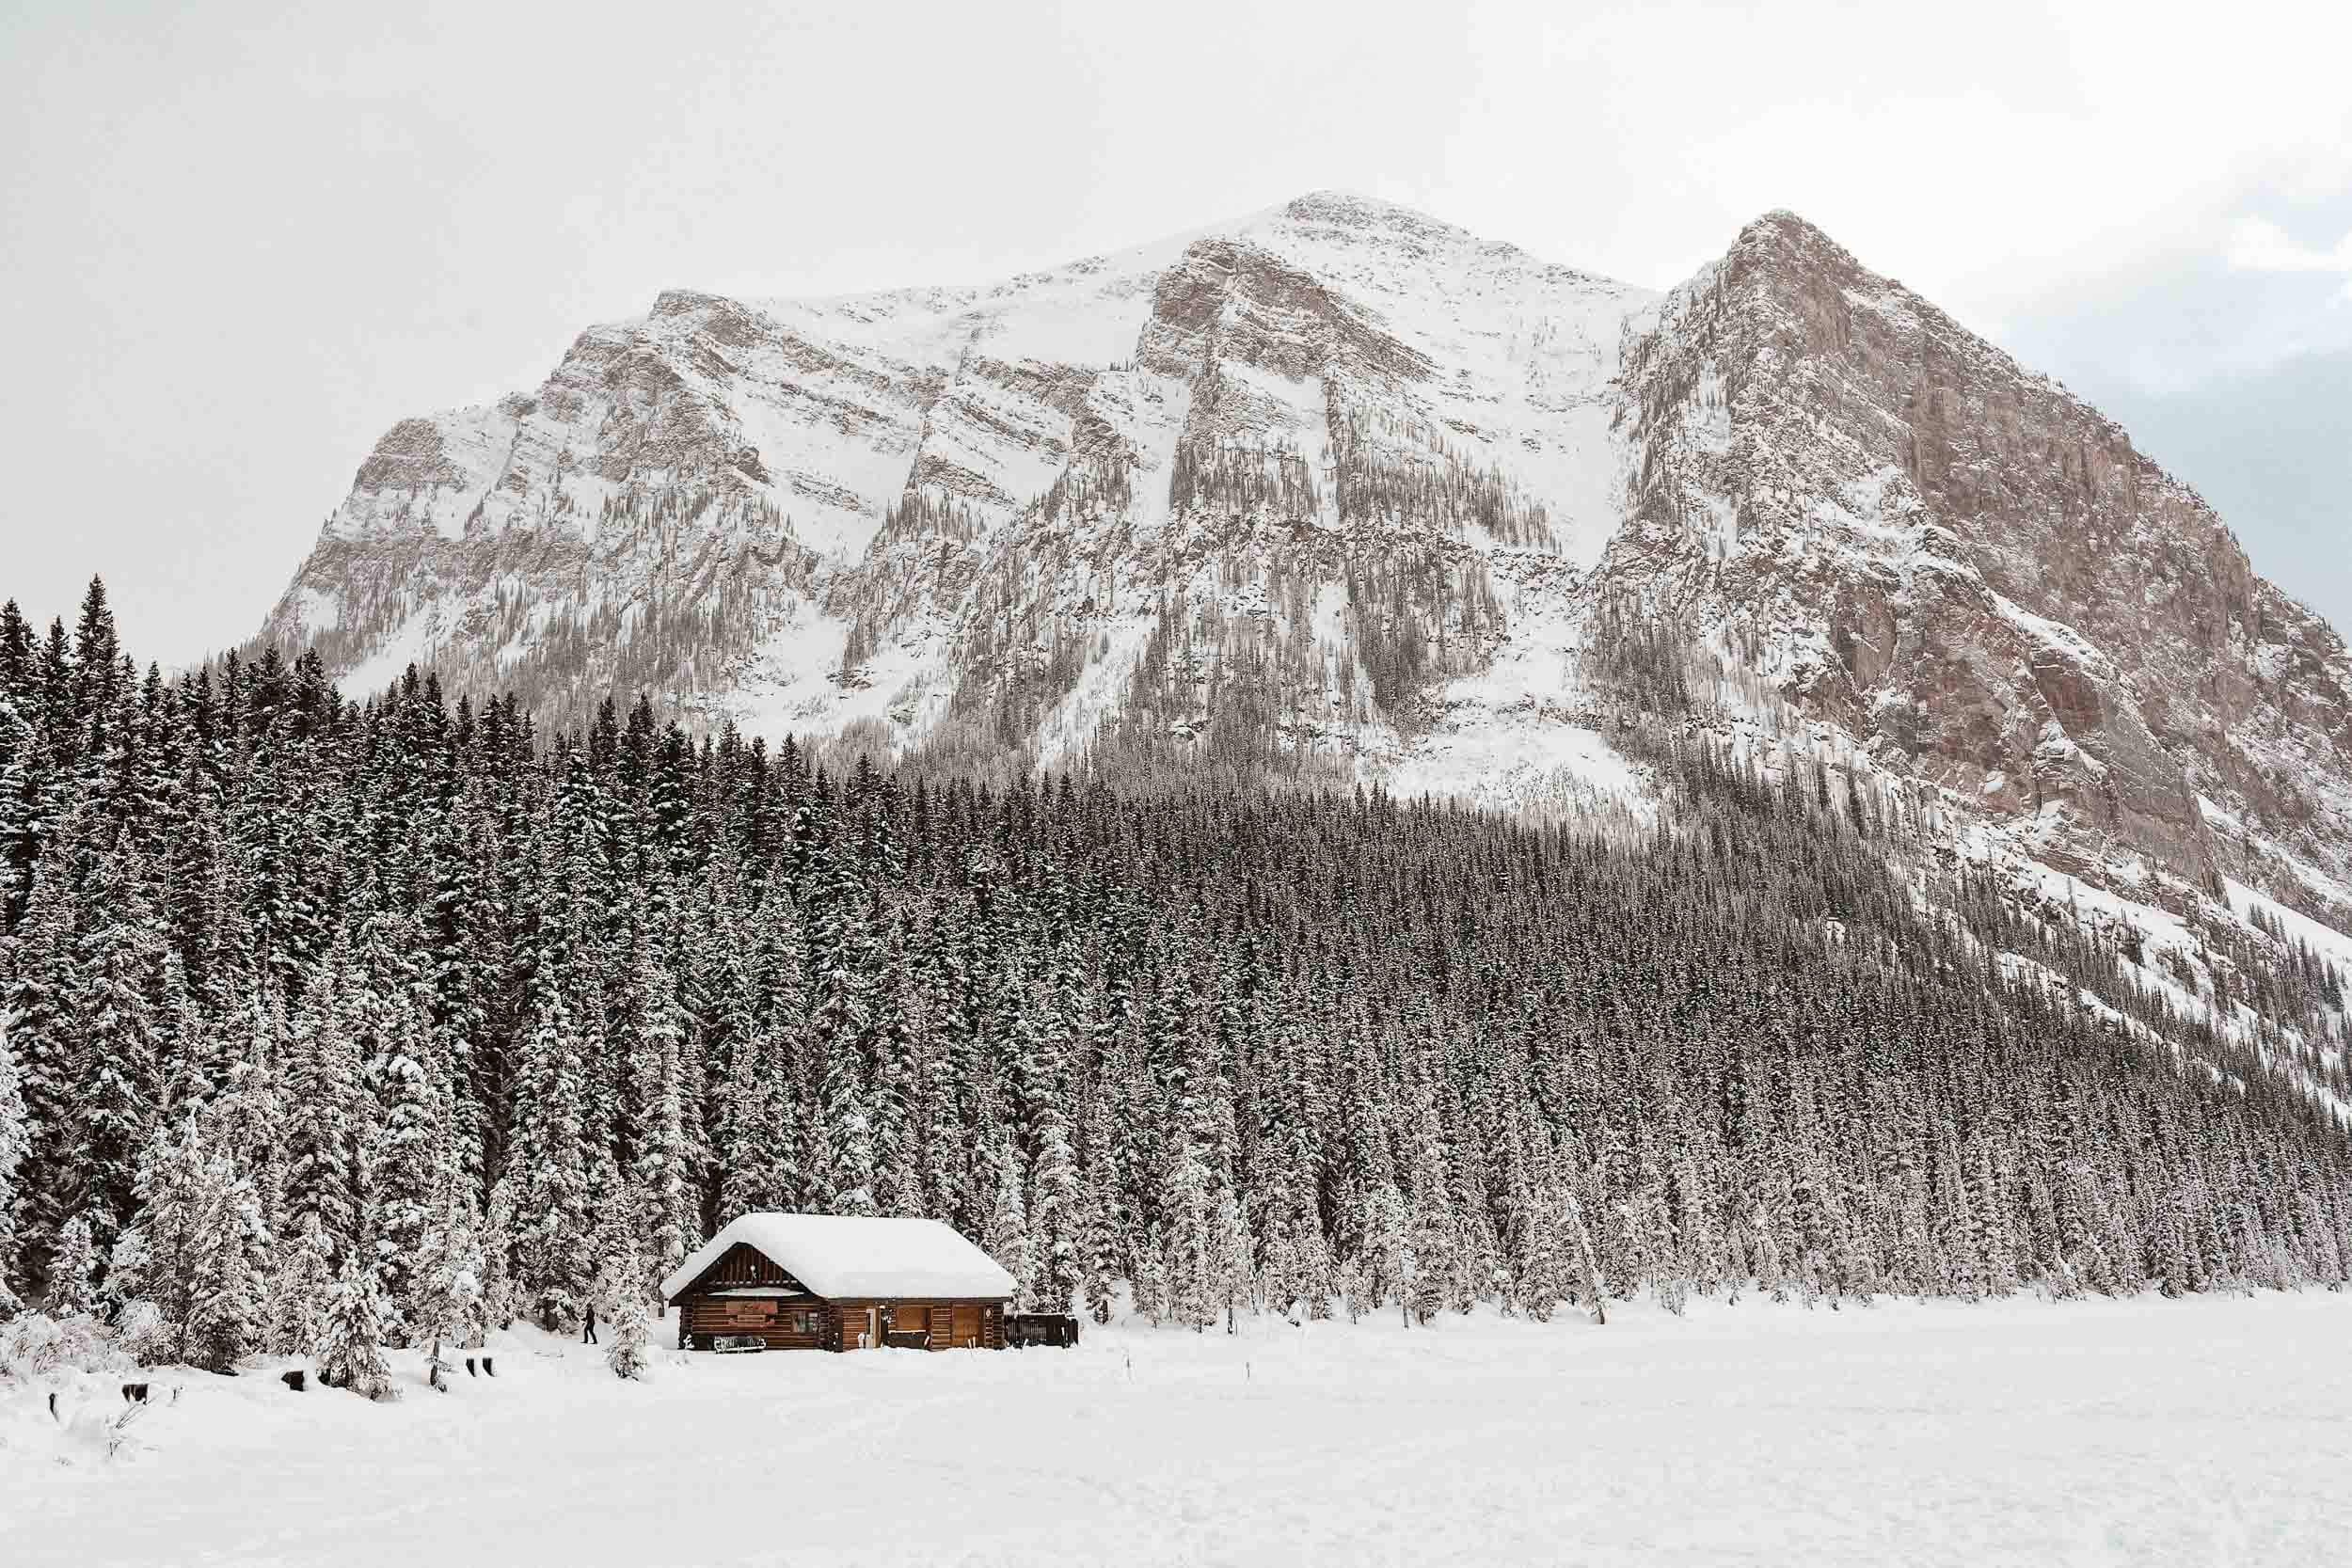 ckanani-banff-winter-a-guide-to-visiting-91.jpg